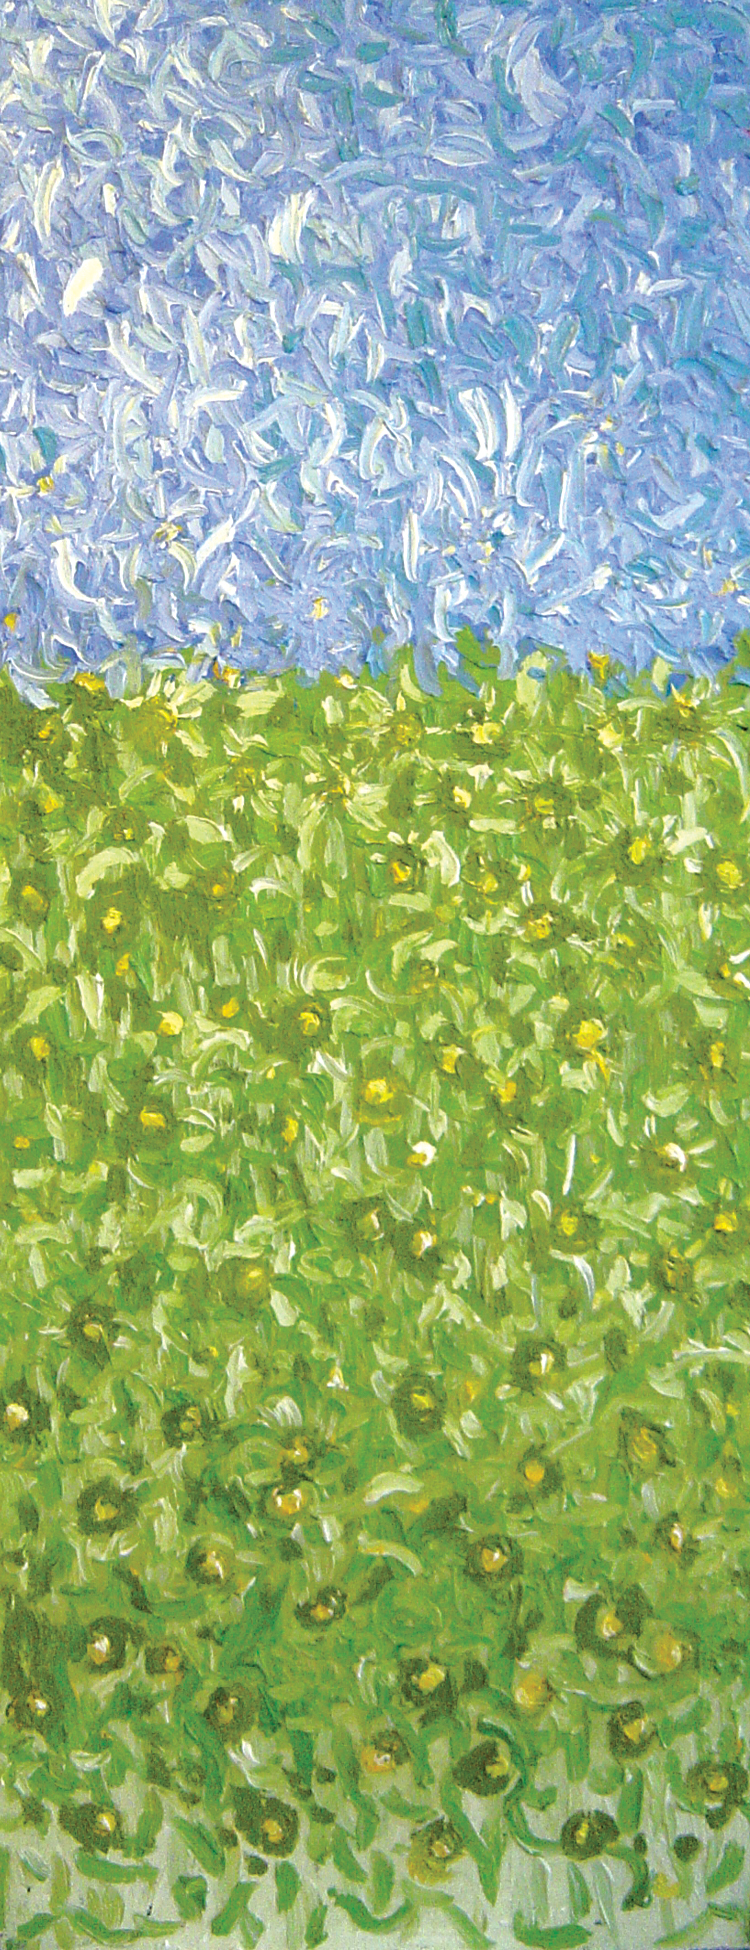 Field<br> <br>oil on paper<br>SOLD